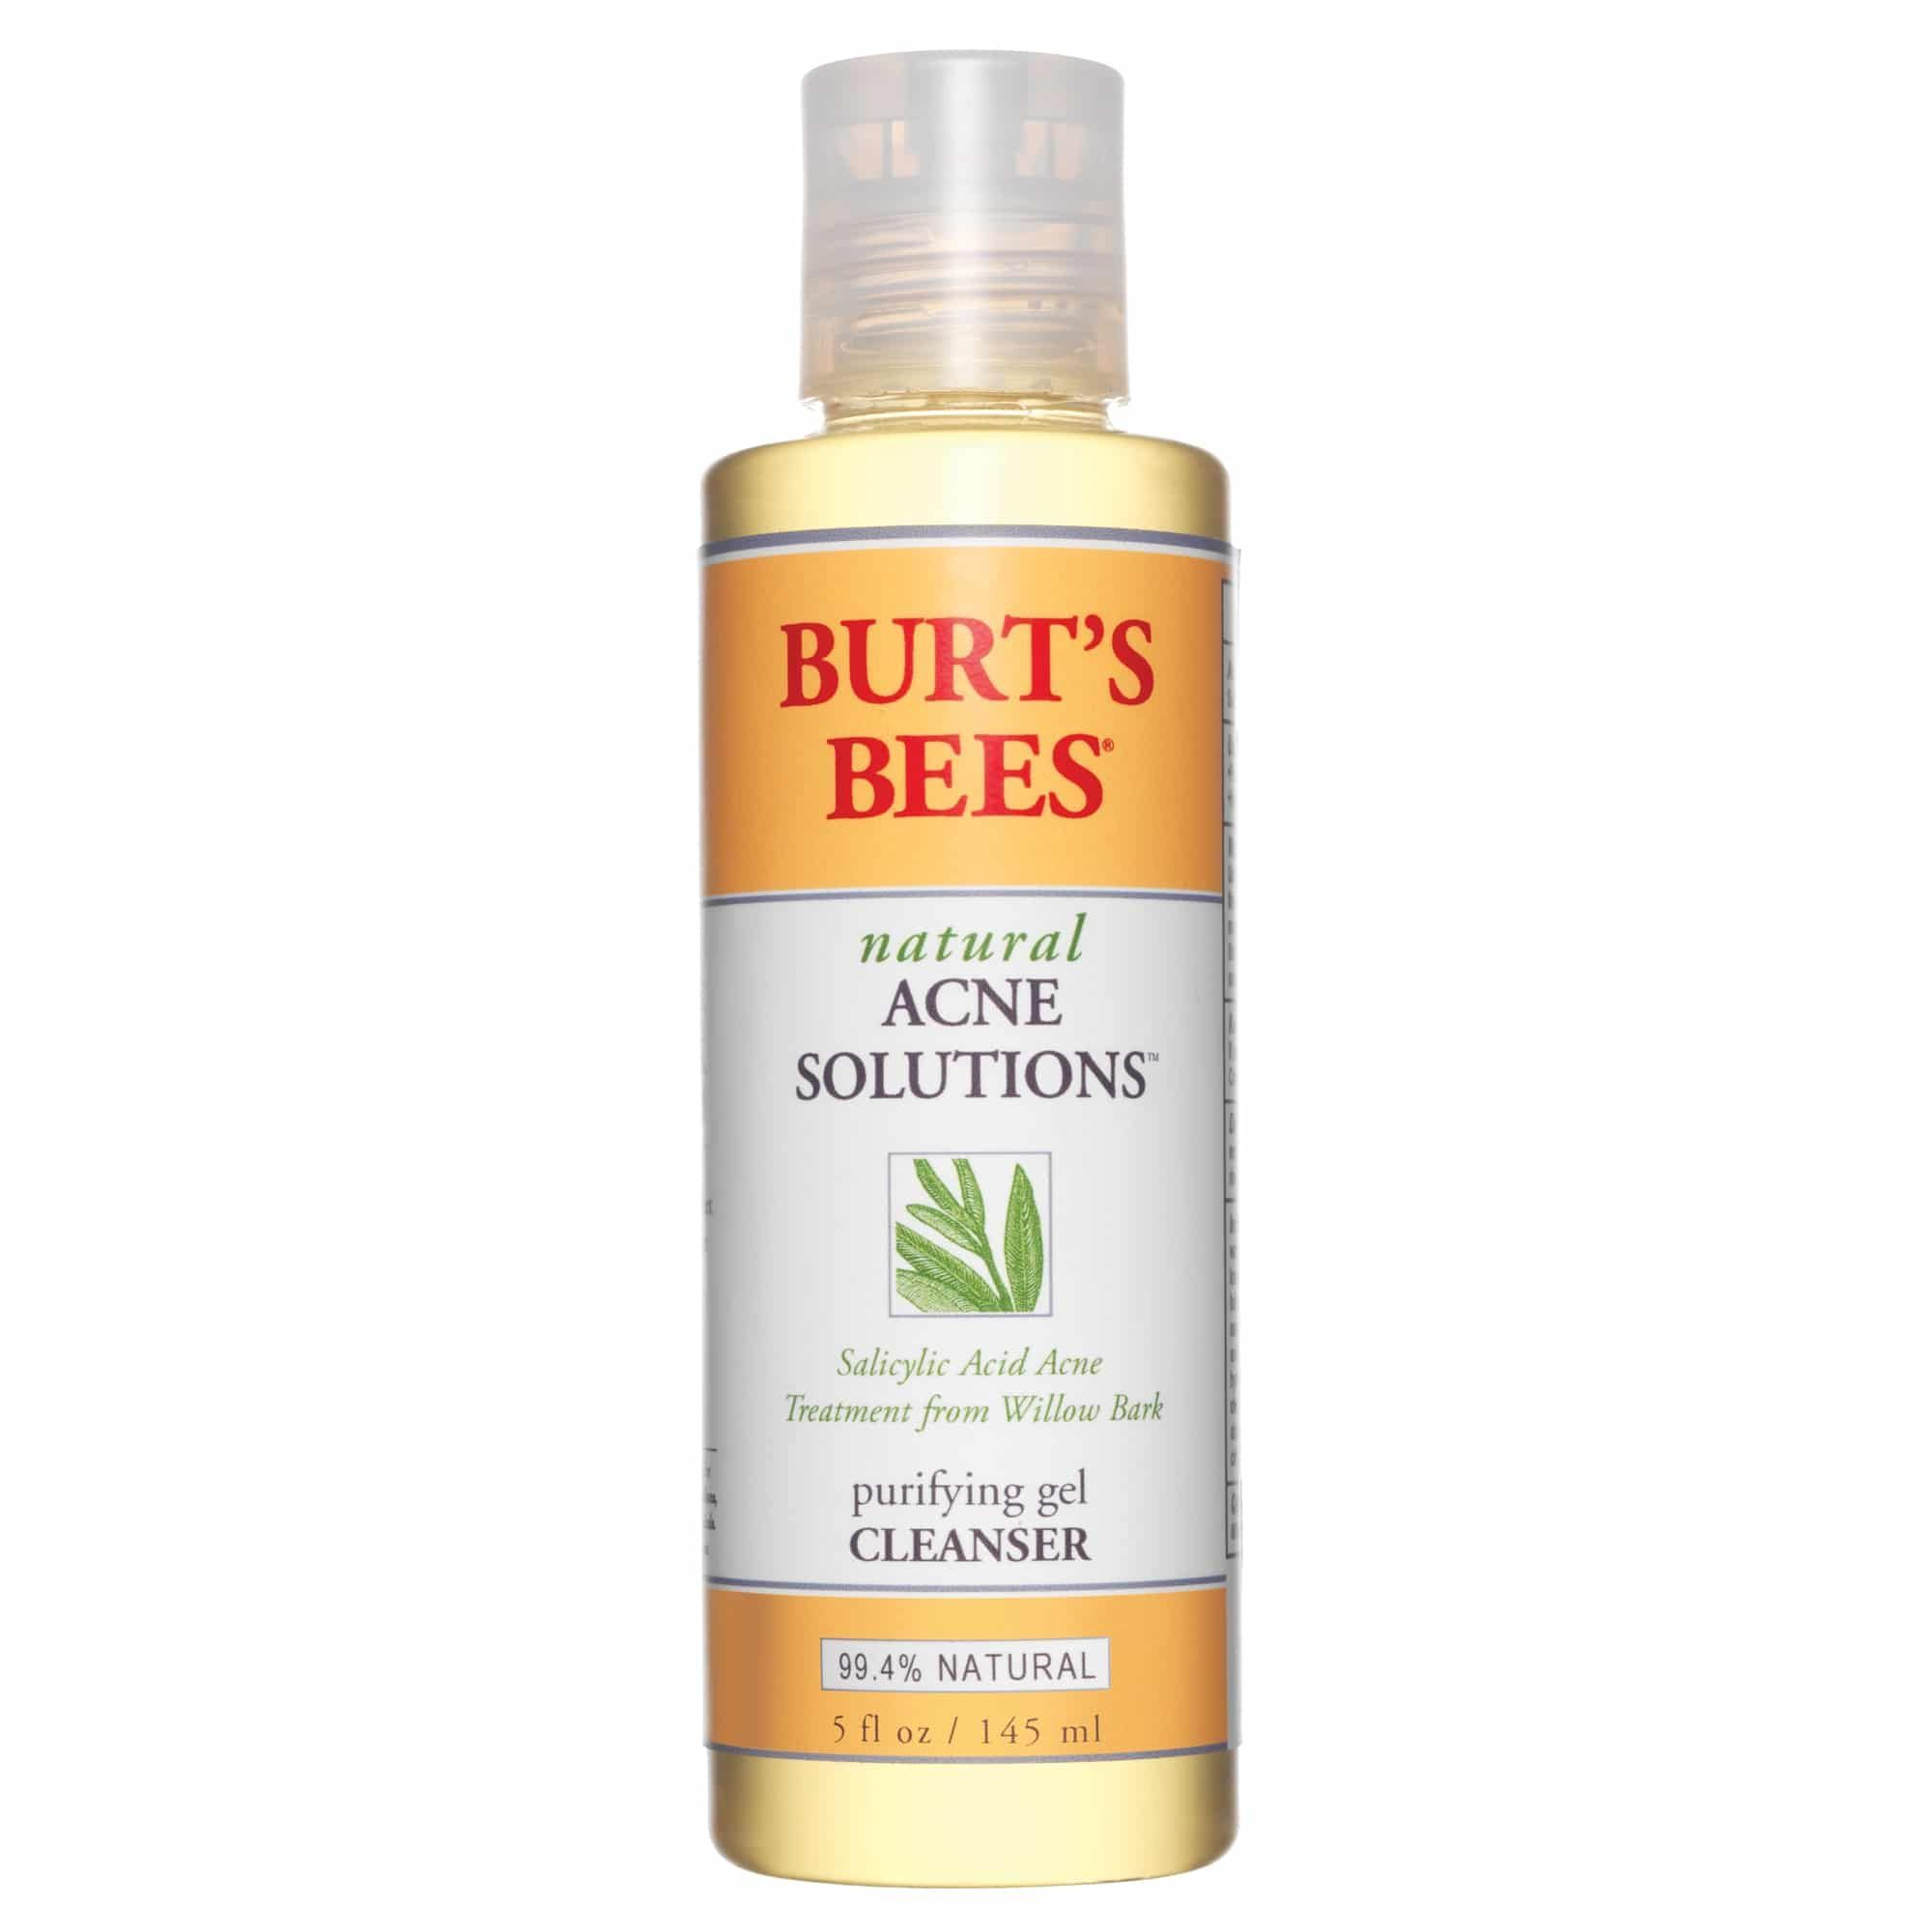 Burtus Bees Natural Acne Solutions Purifying Gel Cleanser  Best